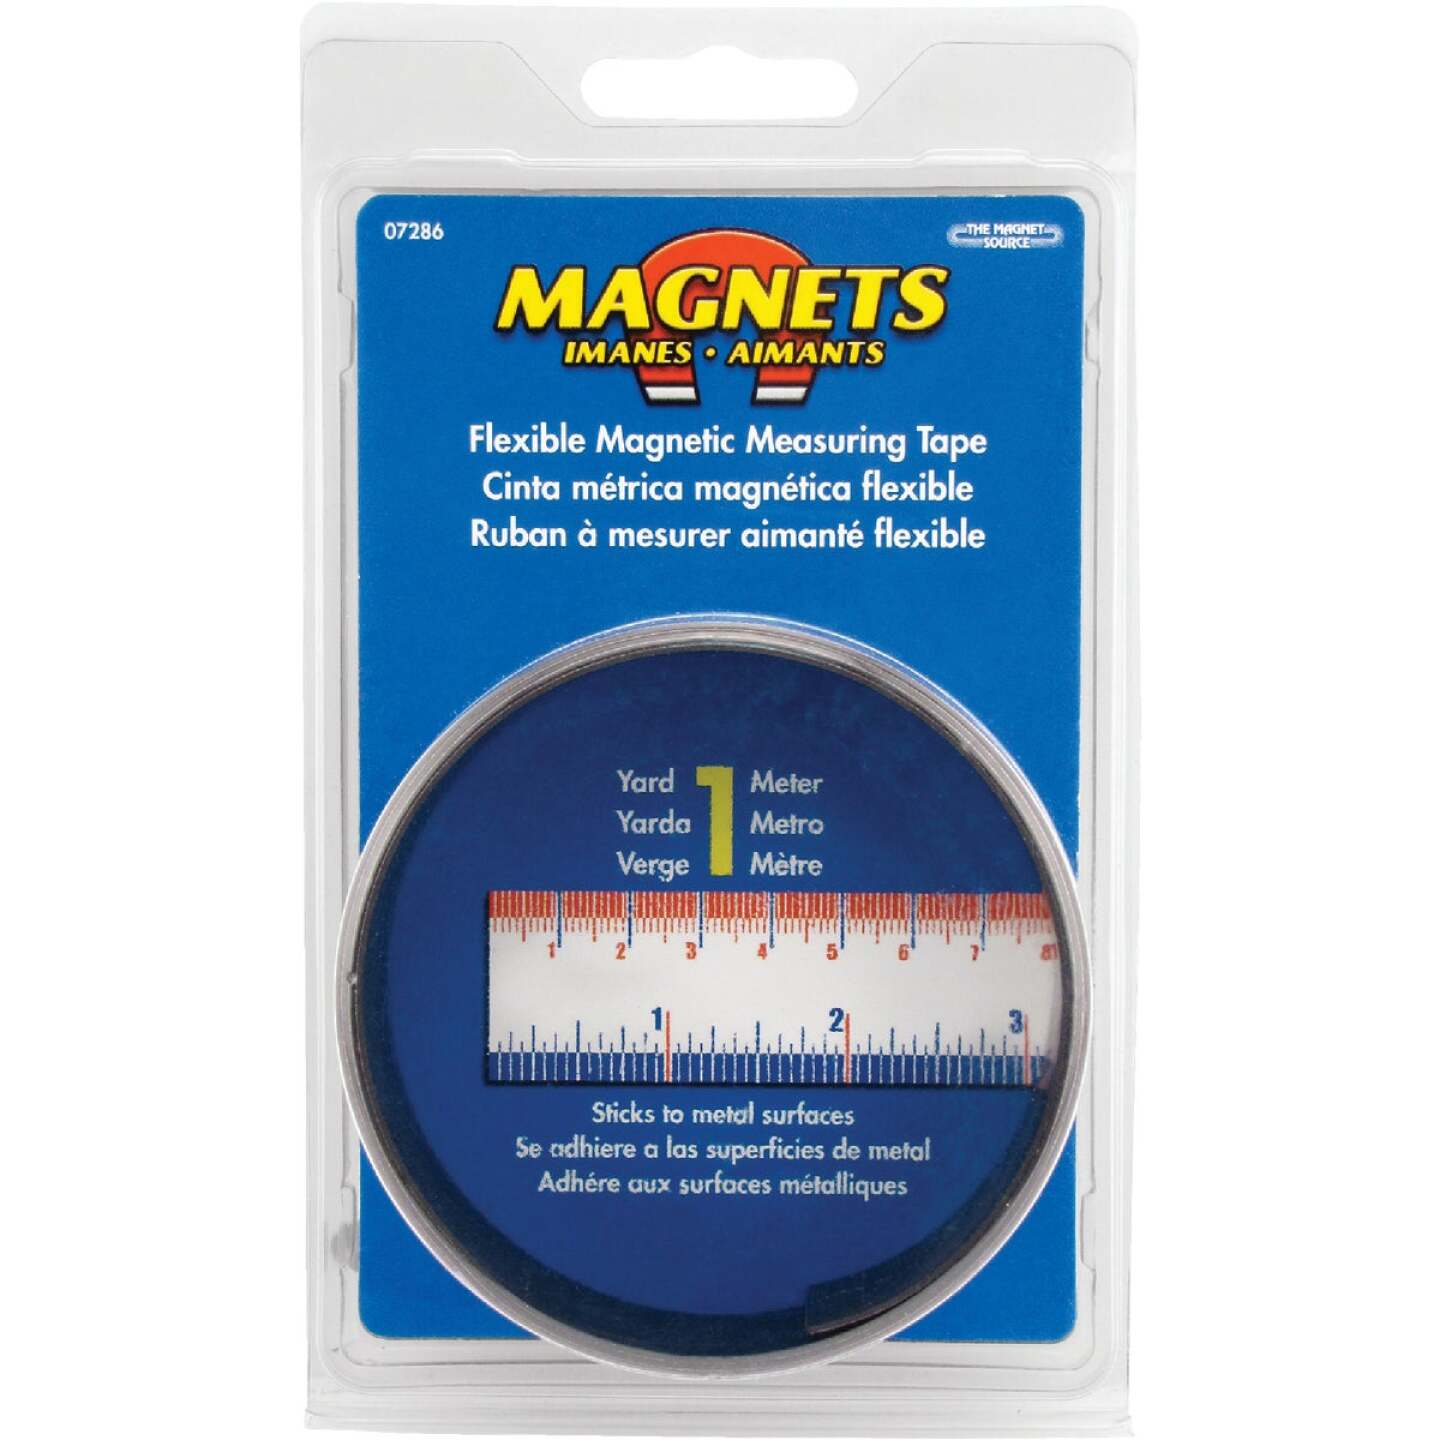 Master Magnetics 3 Ft. Flexible Measuring Tape Image 2